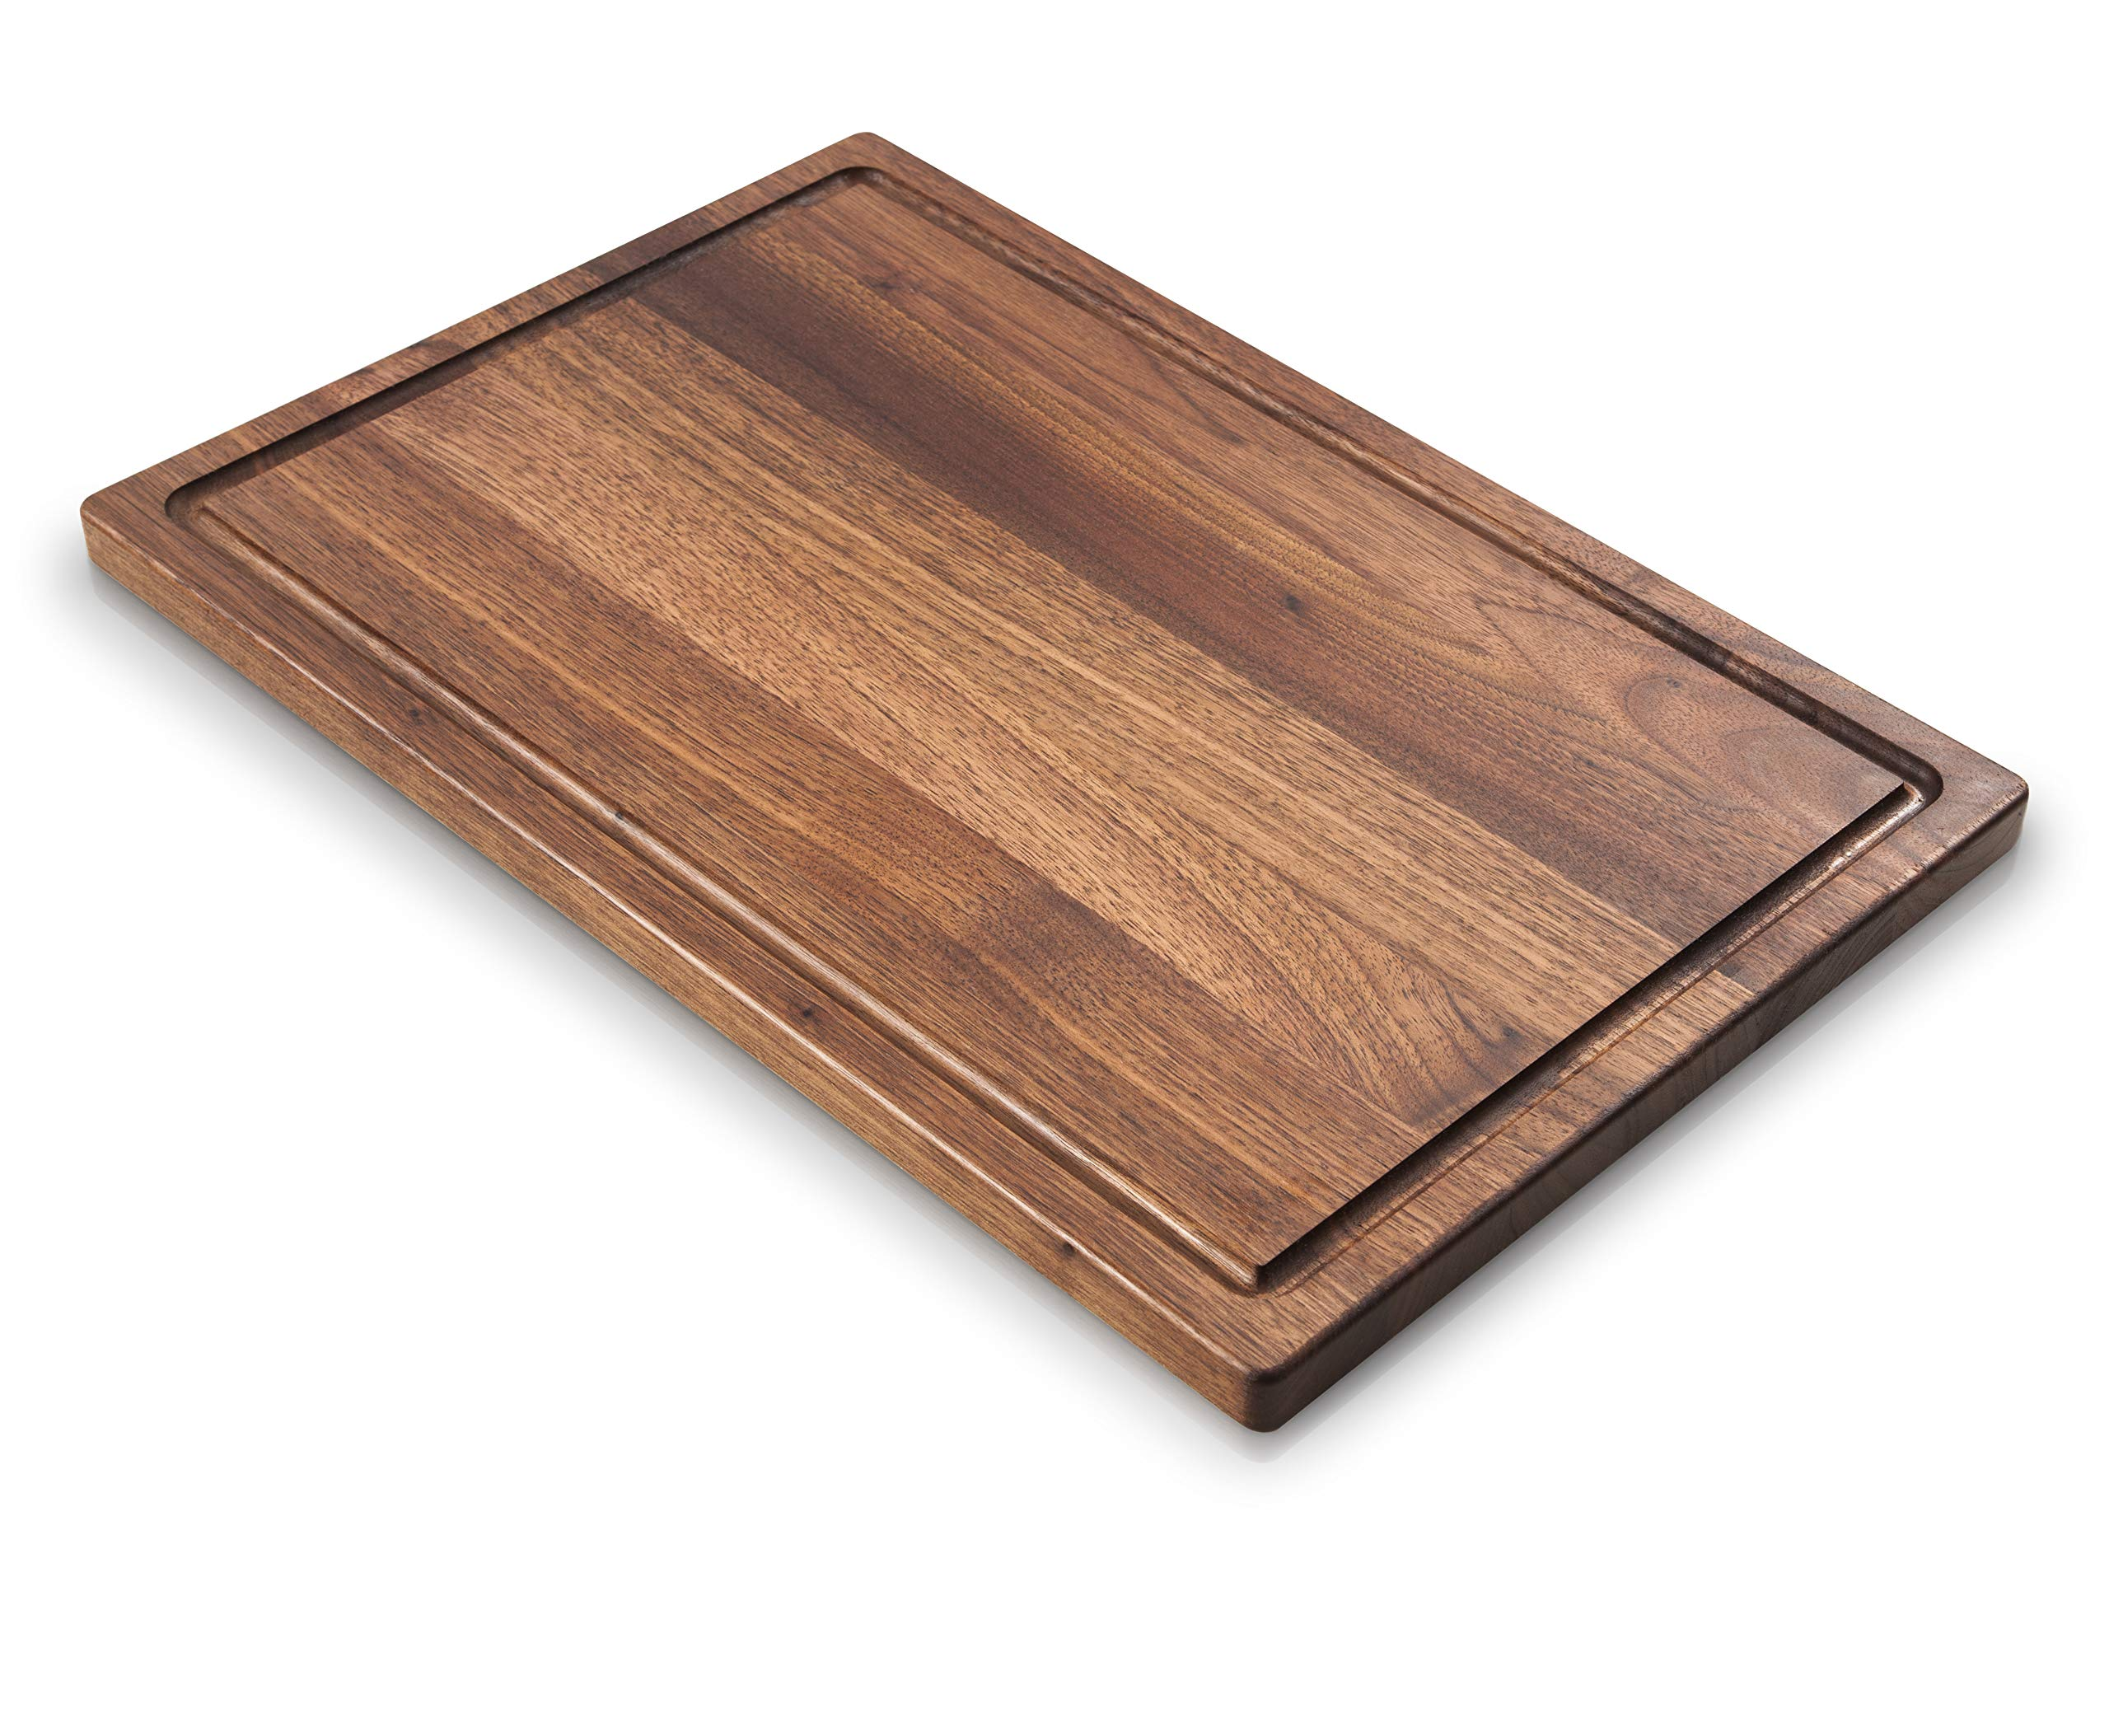 Boilton Large Walnut Wood Cutting Board - 17x11 with Juice Drip Groove, Big American Hardwood Chopping and Carving Countertop Block